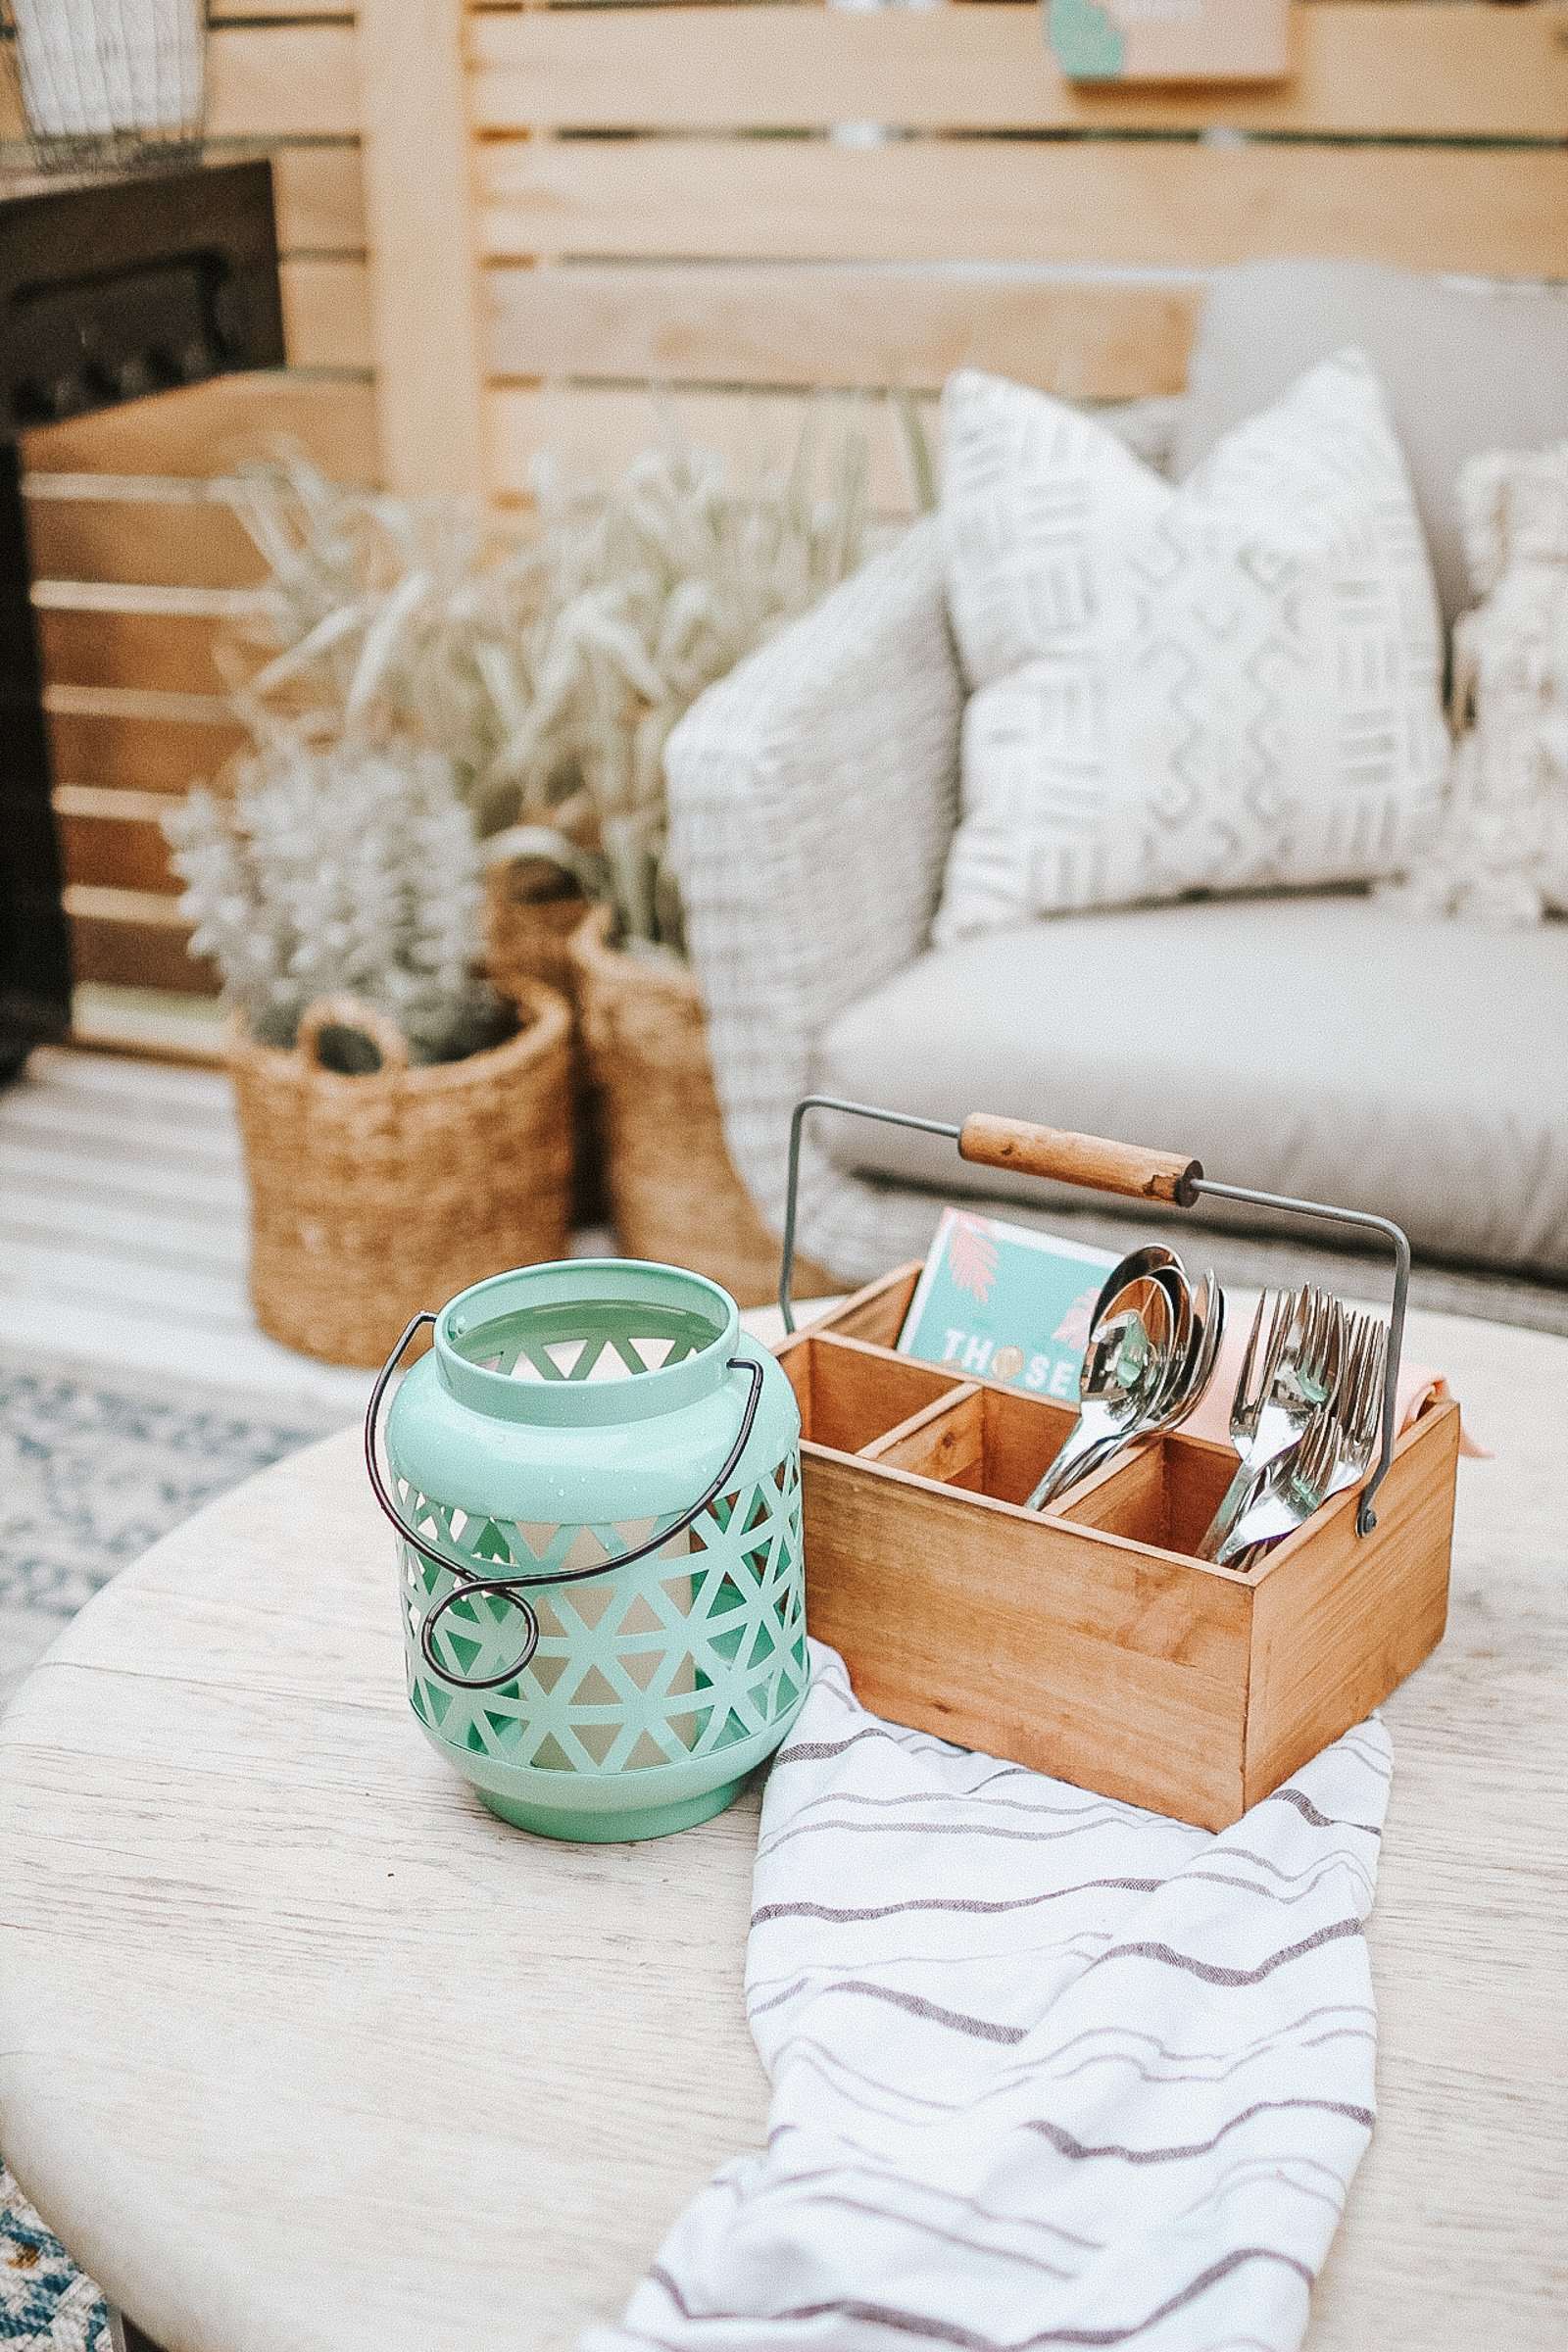 Decocrated the quarterly Home Decor Subscription Box. What's inside and how you can order!